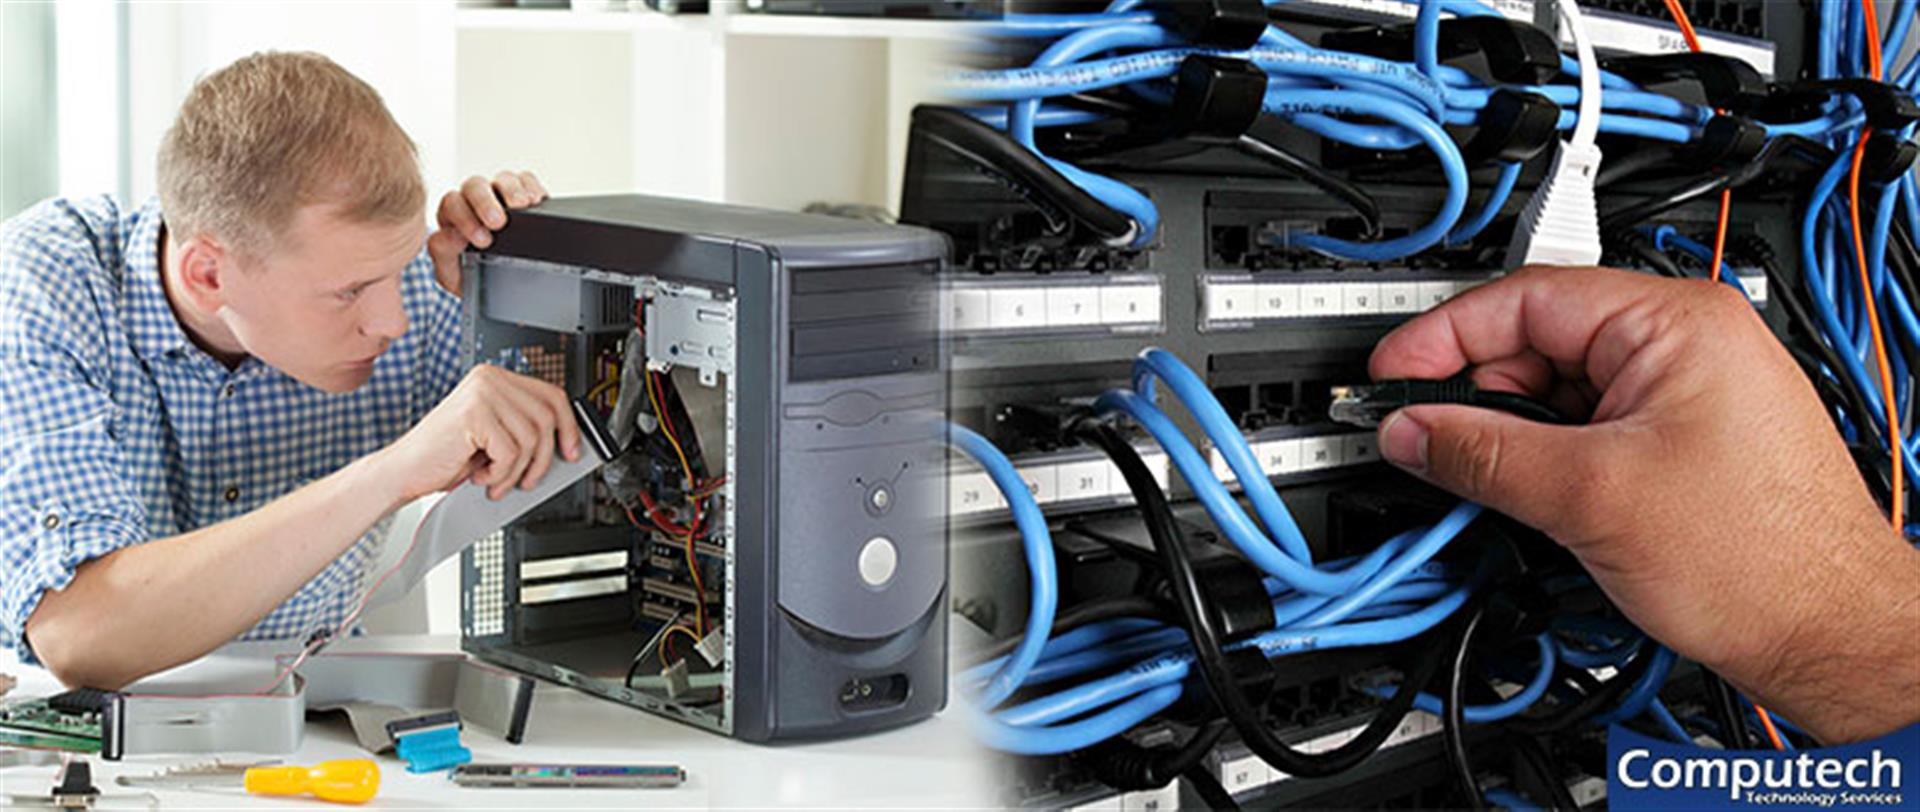 Blackshear Georgia Onsite Computer & Printer Repair, Network, Voice & Data Cabling Services